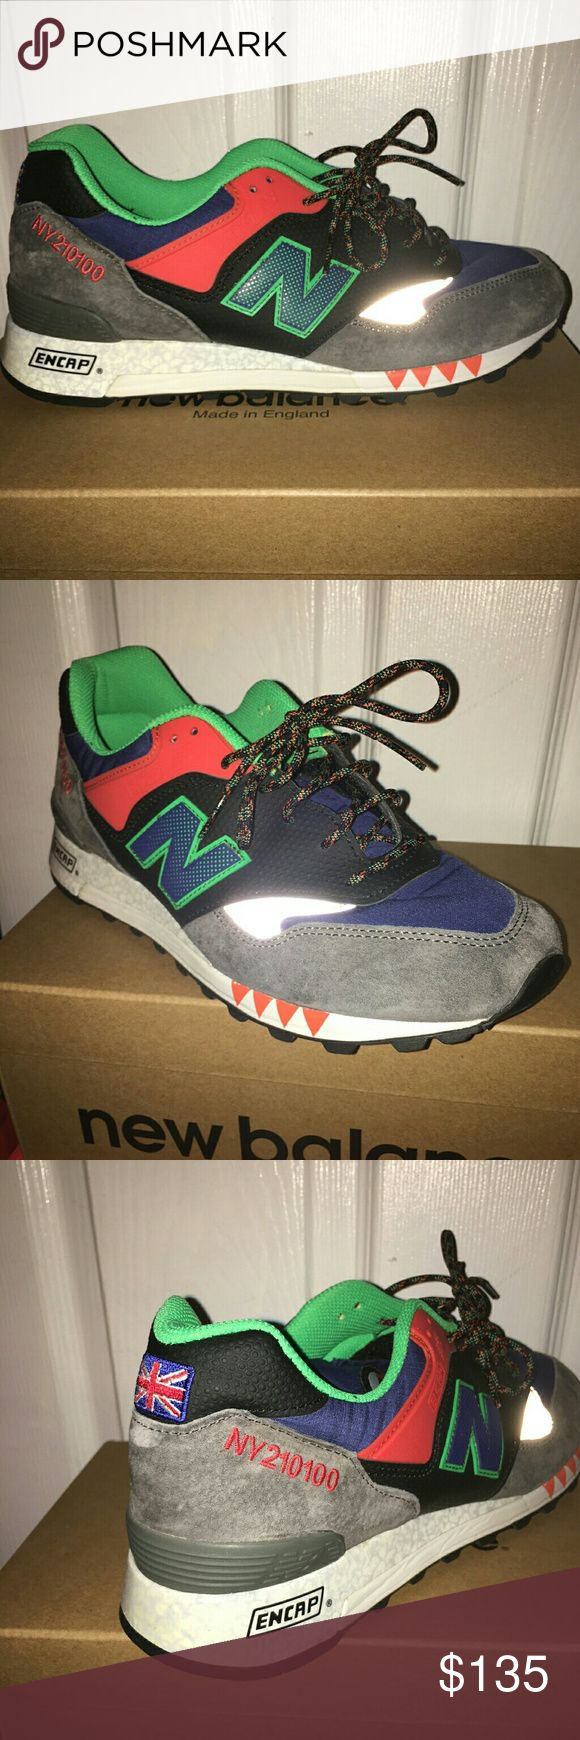 New Balance The Napes Size 8  never worn has a box  , rare sneaker  , released in England!  100% authentic No low balls New Balance Shoes Sneakers